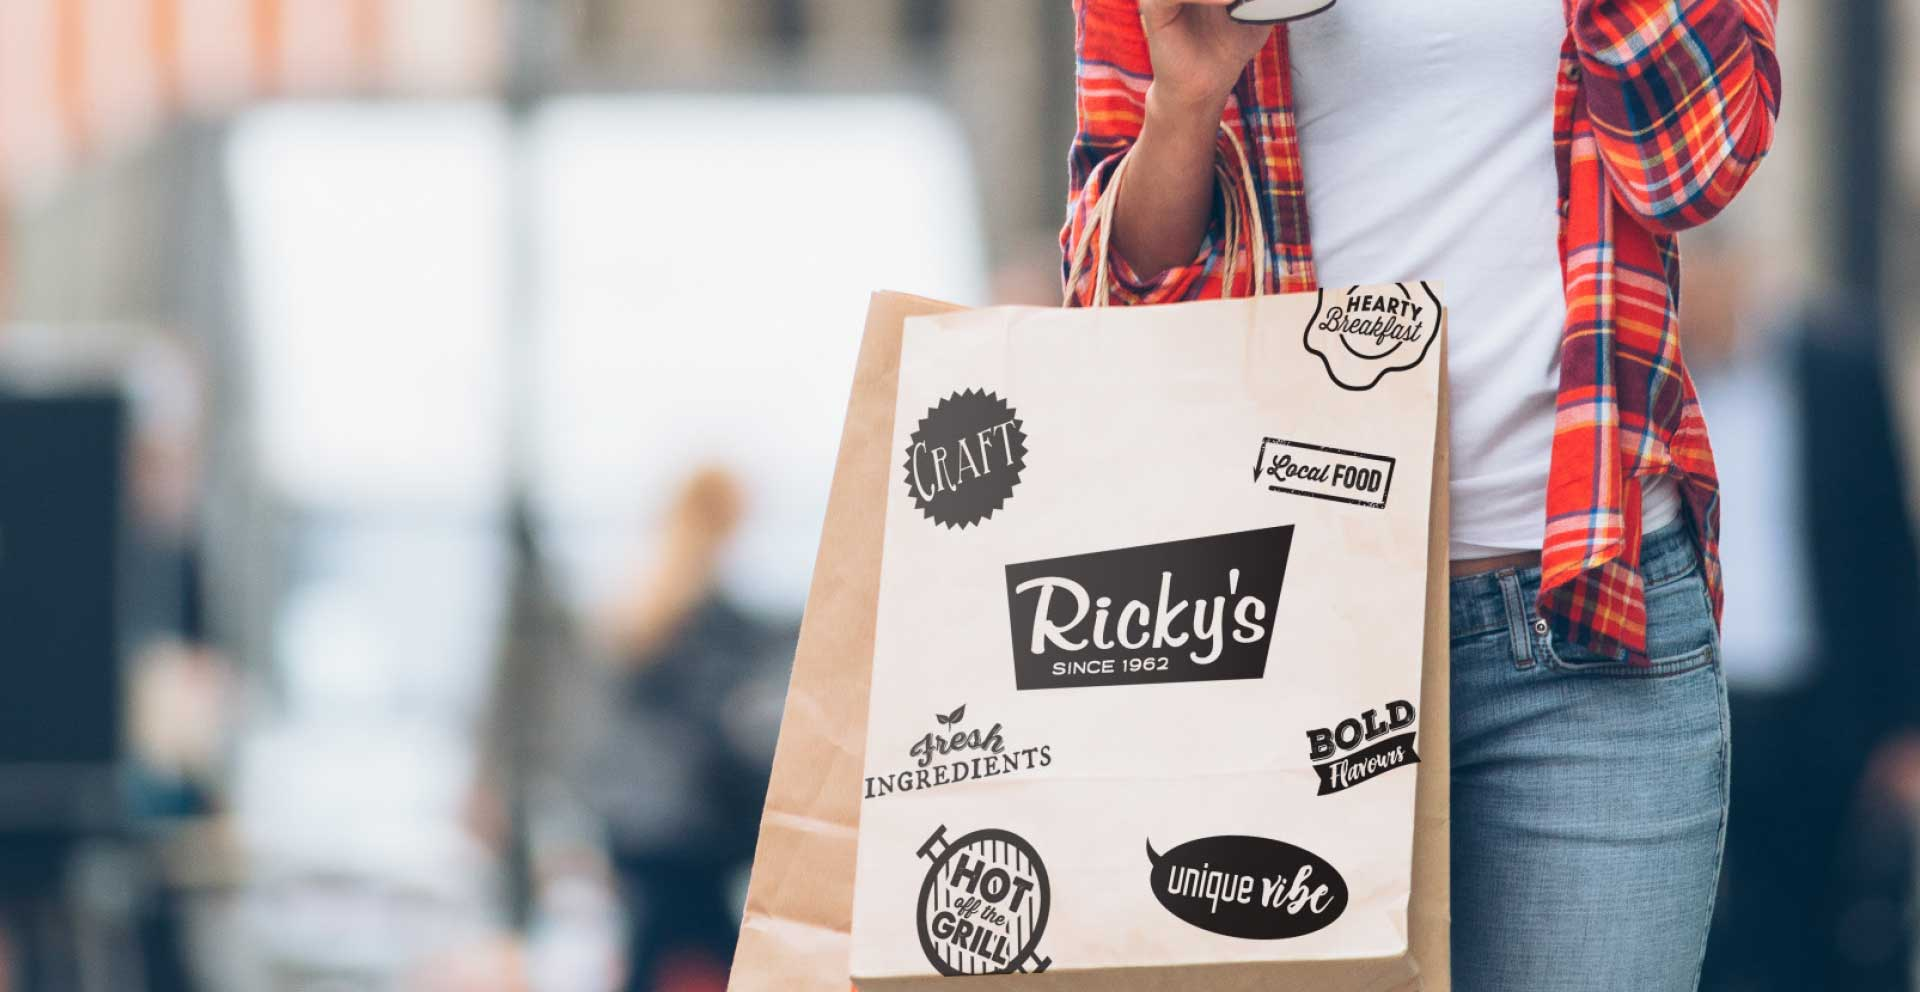 Call the restaurant for take-out or see if your local Ricky's delivers with Skip the Dishes!